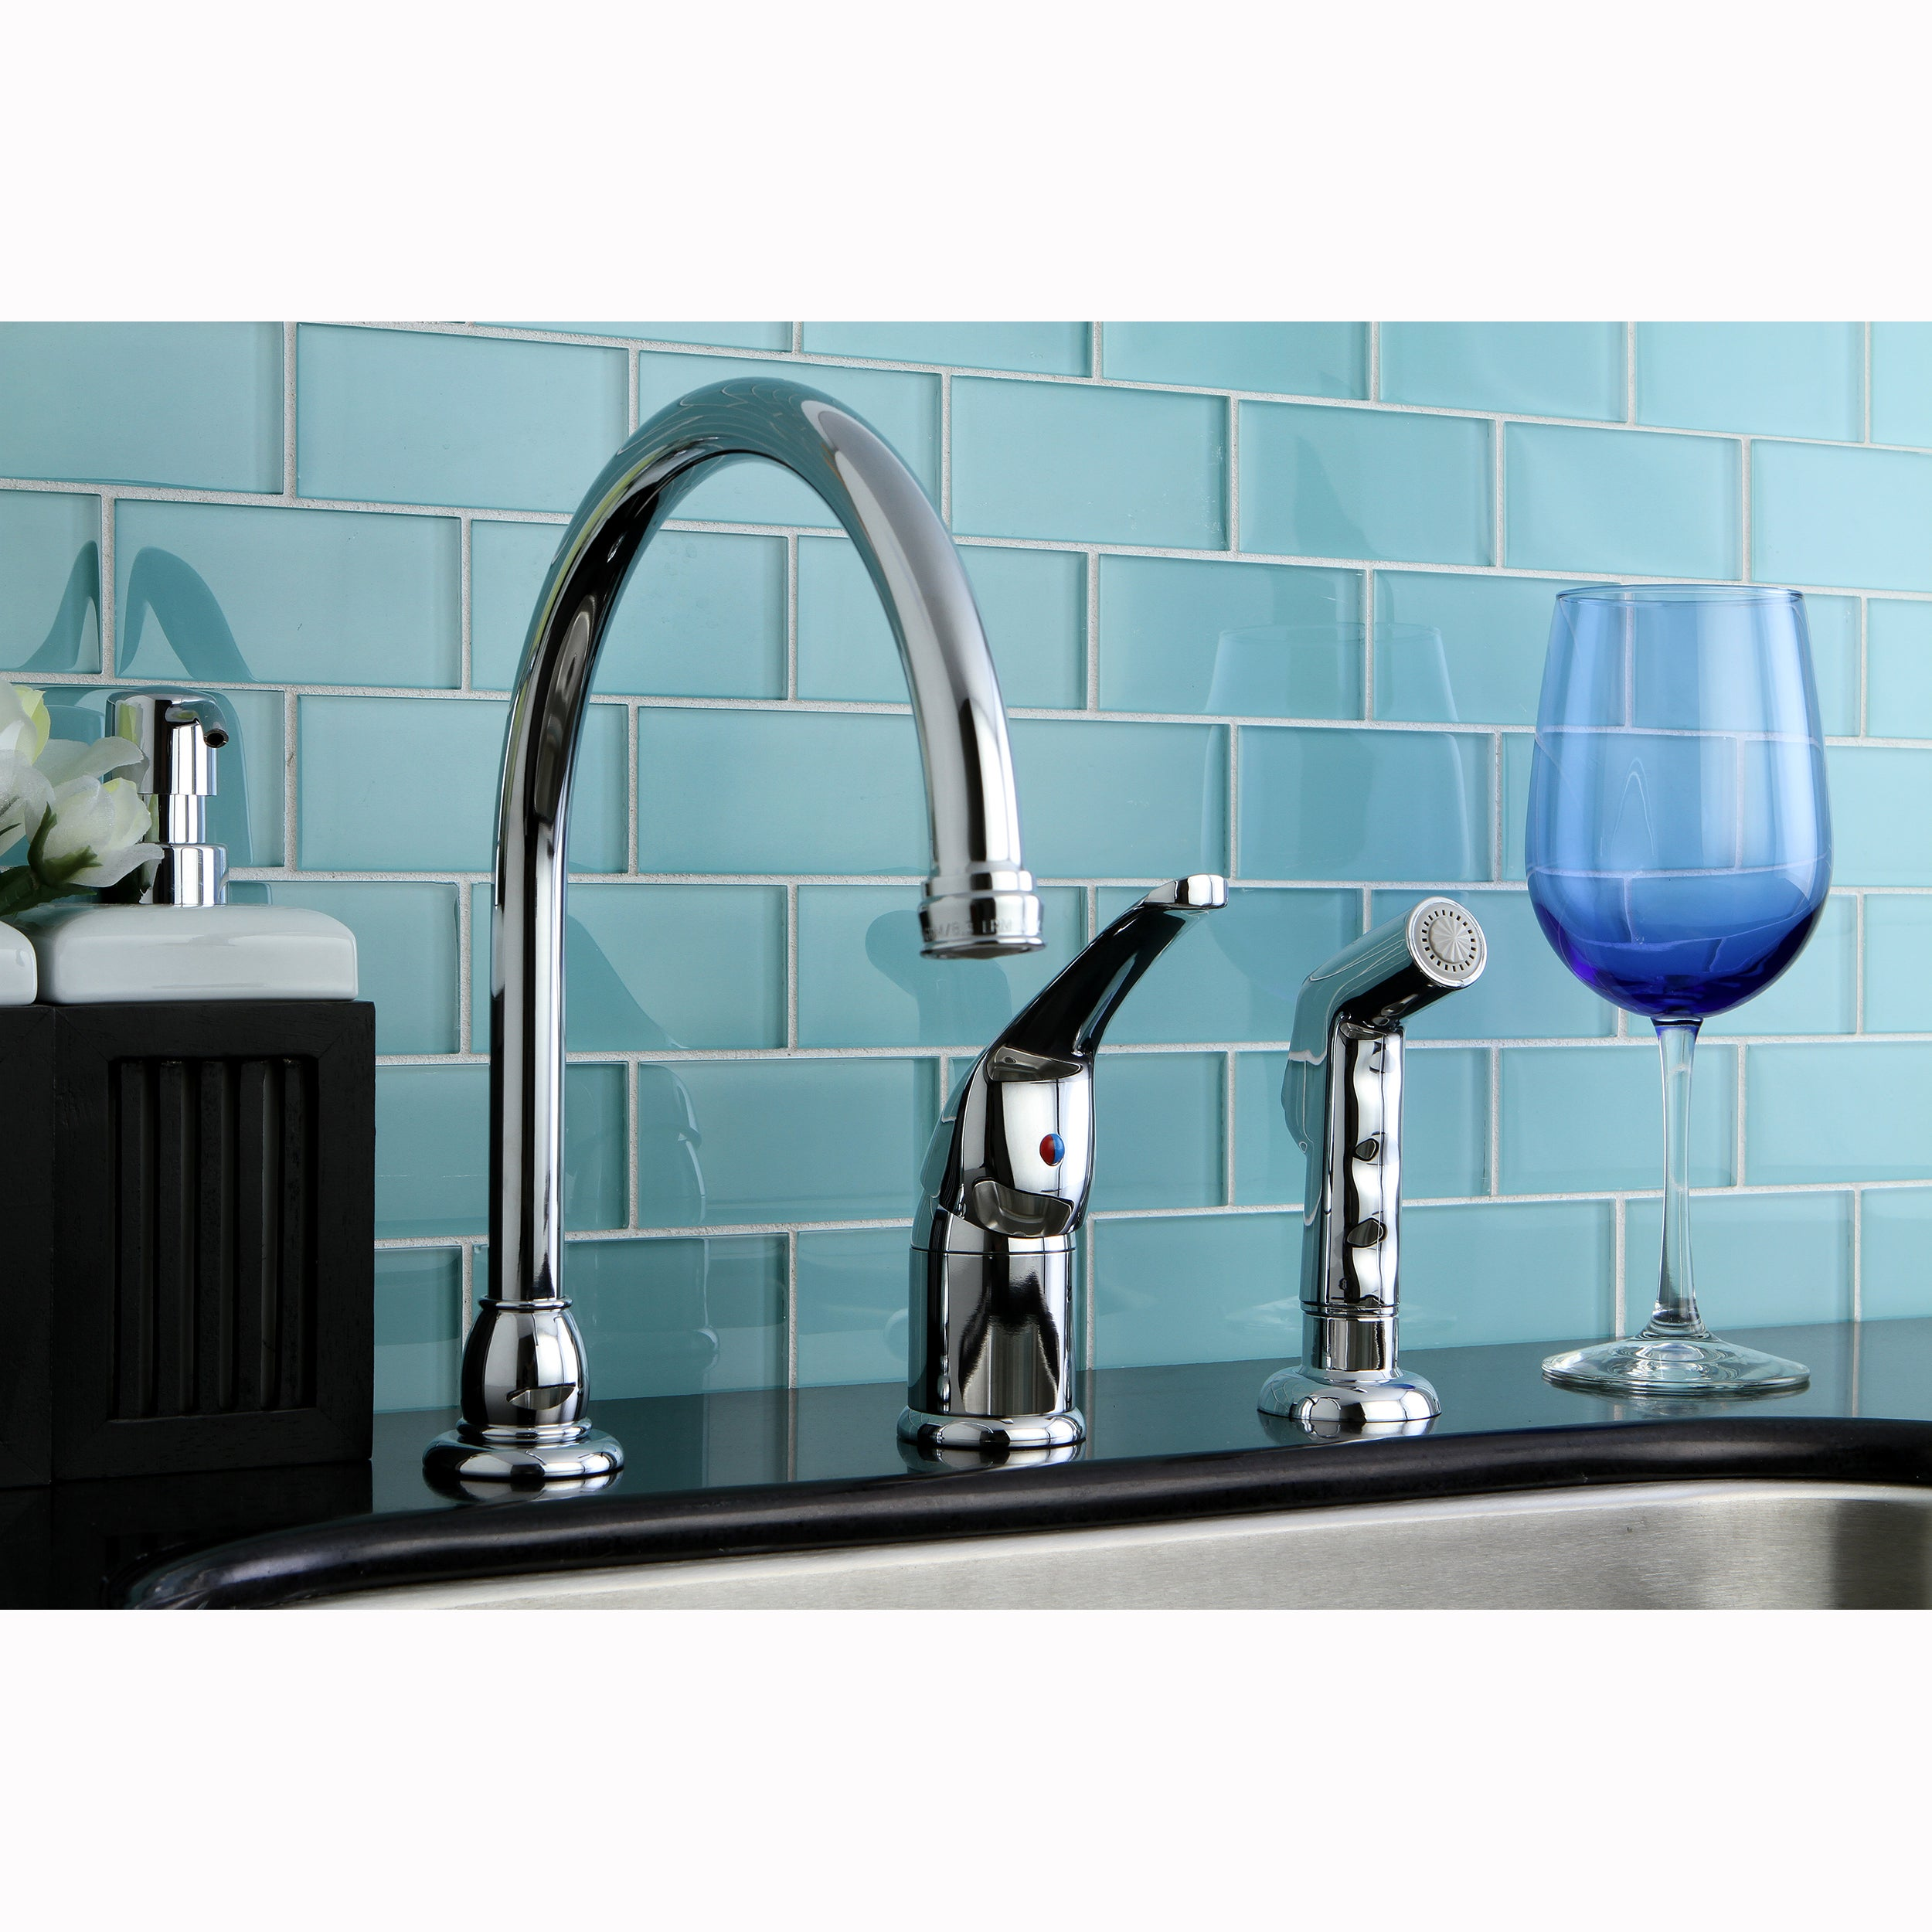 Chrome Kitchen Faucet - Free Shipping Today - Overstock - 10433418